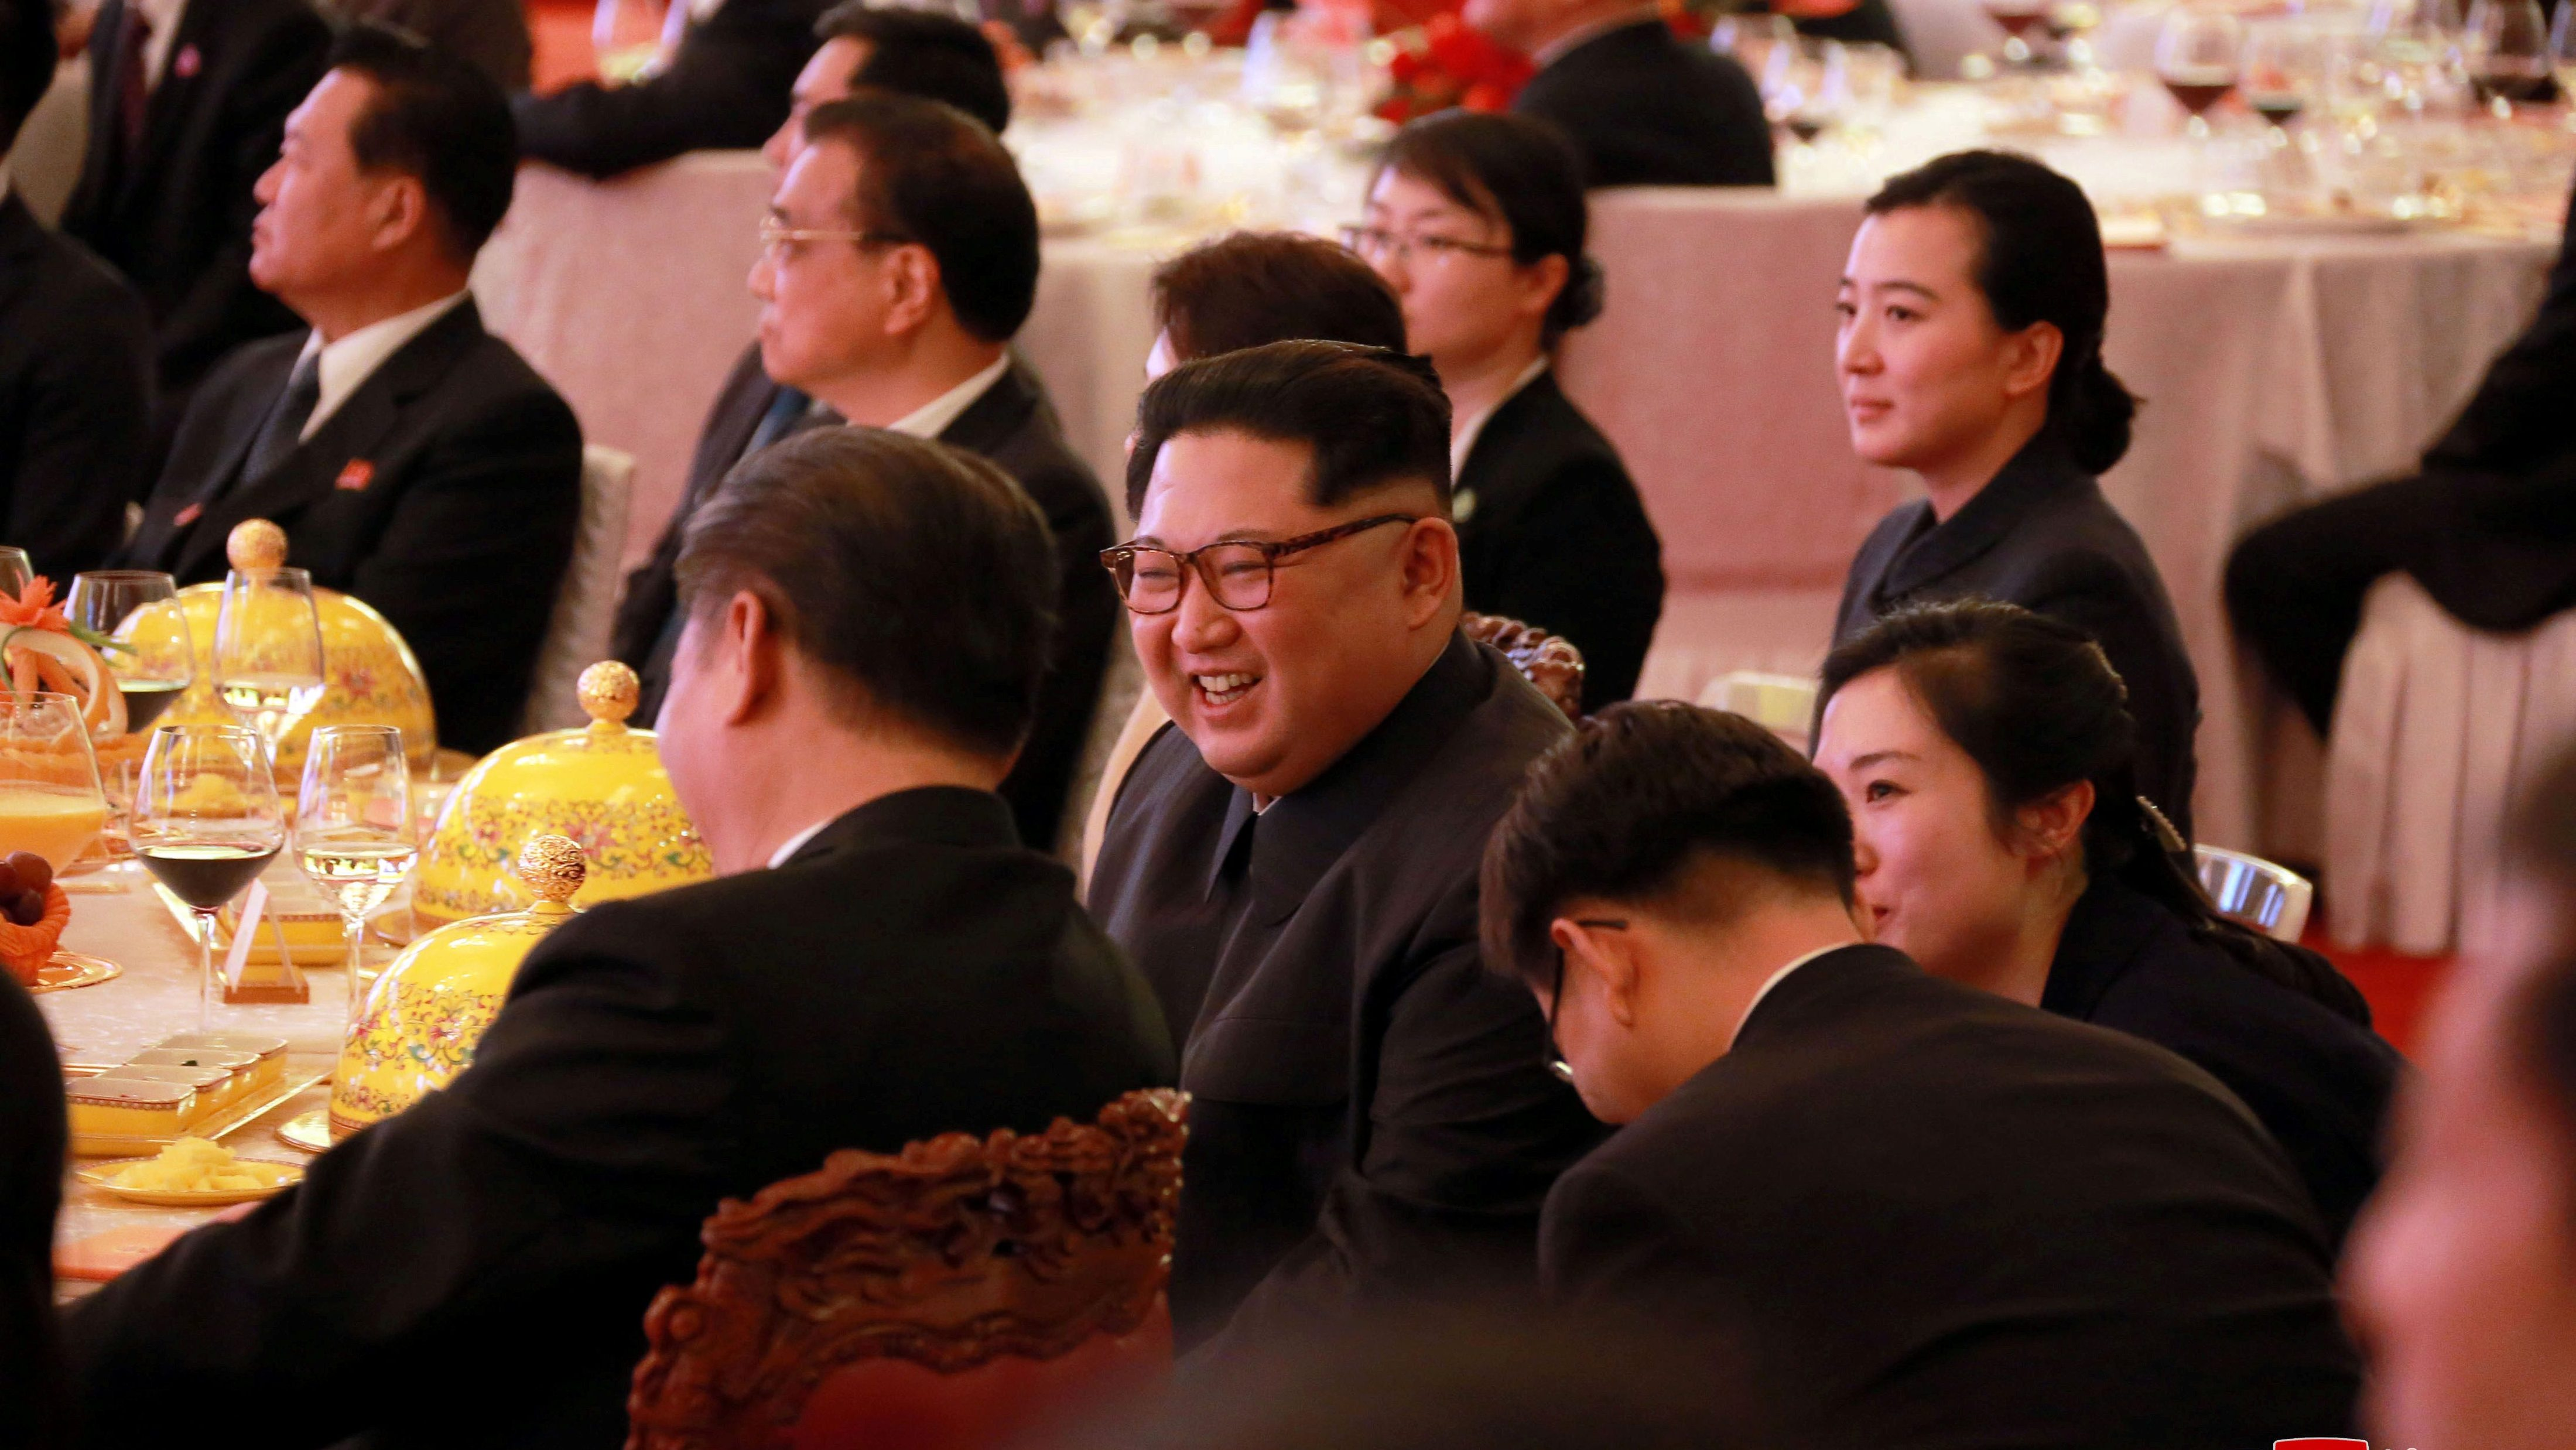 North Korean leader Kim Jong Un smiles during a banquet in Beijing, as he paid an unofficial visit to China, in this undated photo released by North Korea's Korean Central News Agency (KCNA) in Pyongyang March 28, 2018.